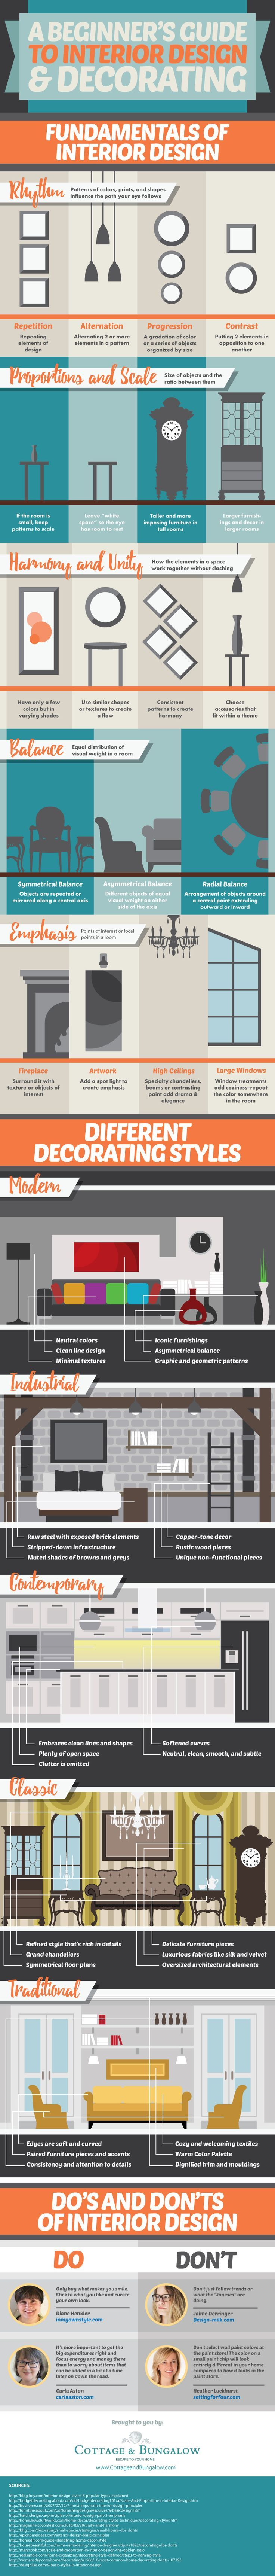 the beginners guide to interior design and decorating wwwsettingforfou